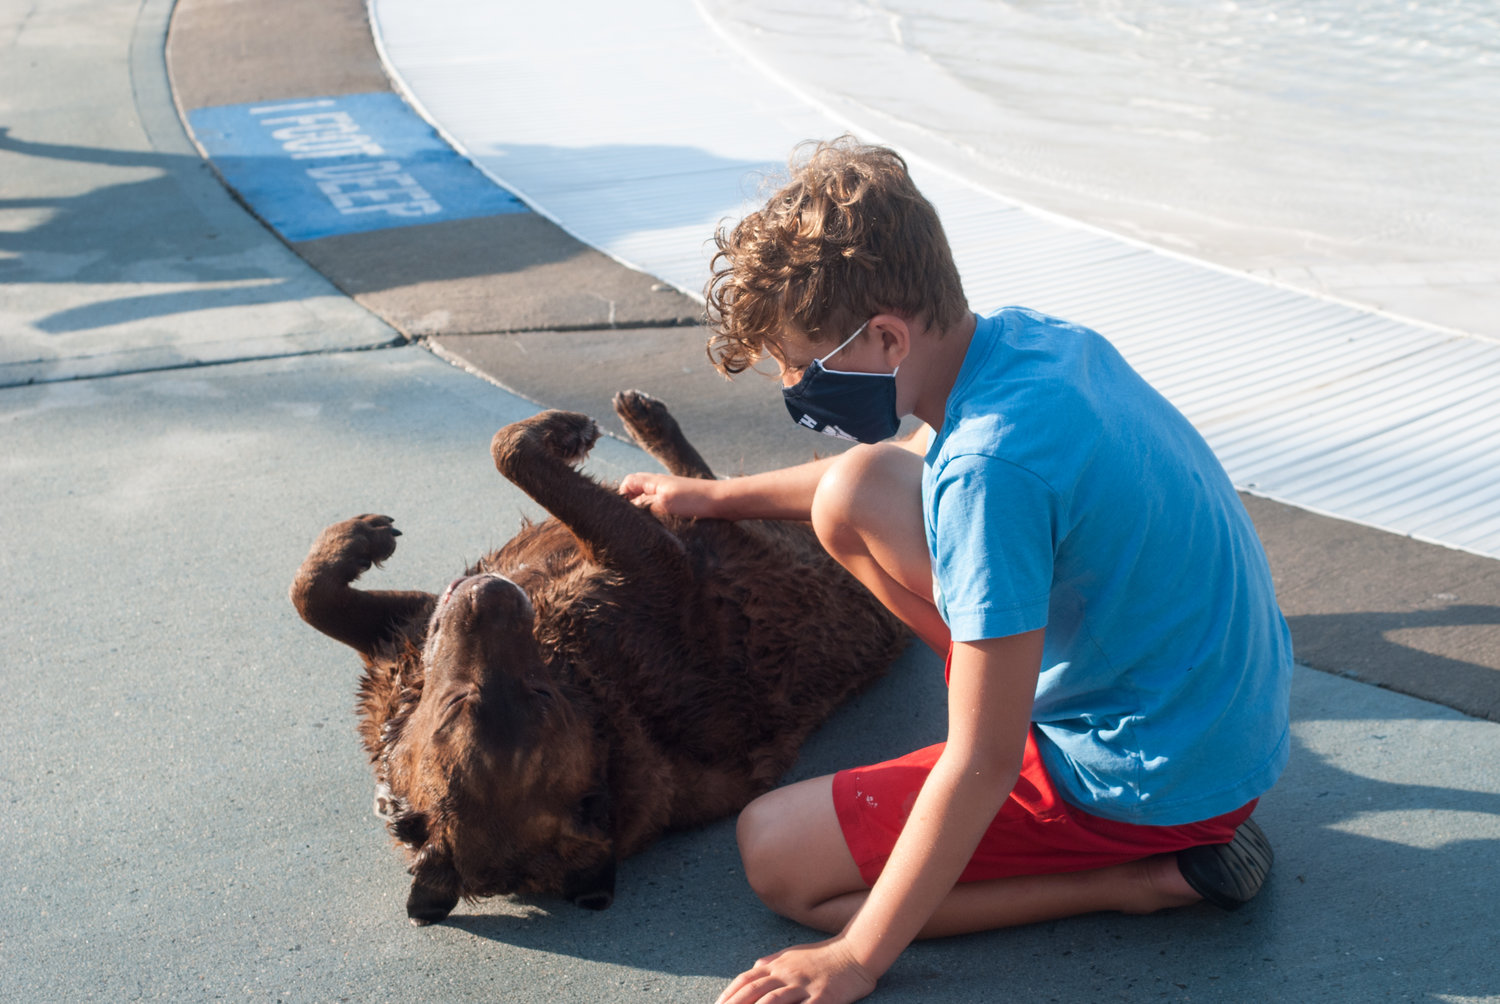 Levi Agamiem, 9, gives tummy rubs to Bella, a 10 and half year old chocolate lab at the Friends of Valley Stream Dogs annual Doggie Pool Party on Sept. 8 at the Hendrickson Park pool complex. Bella has been attending the parties since they began six years ago